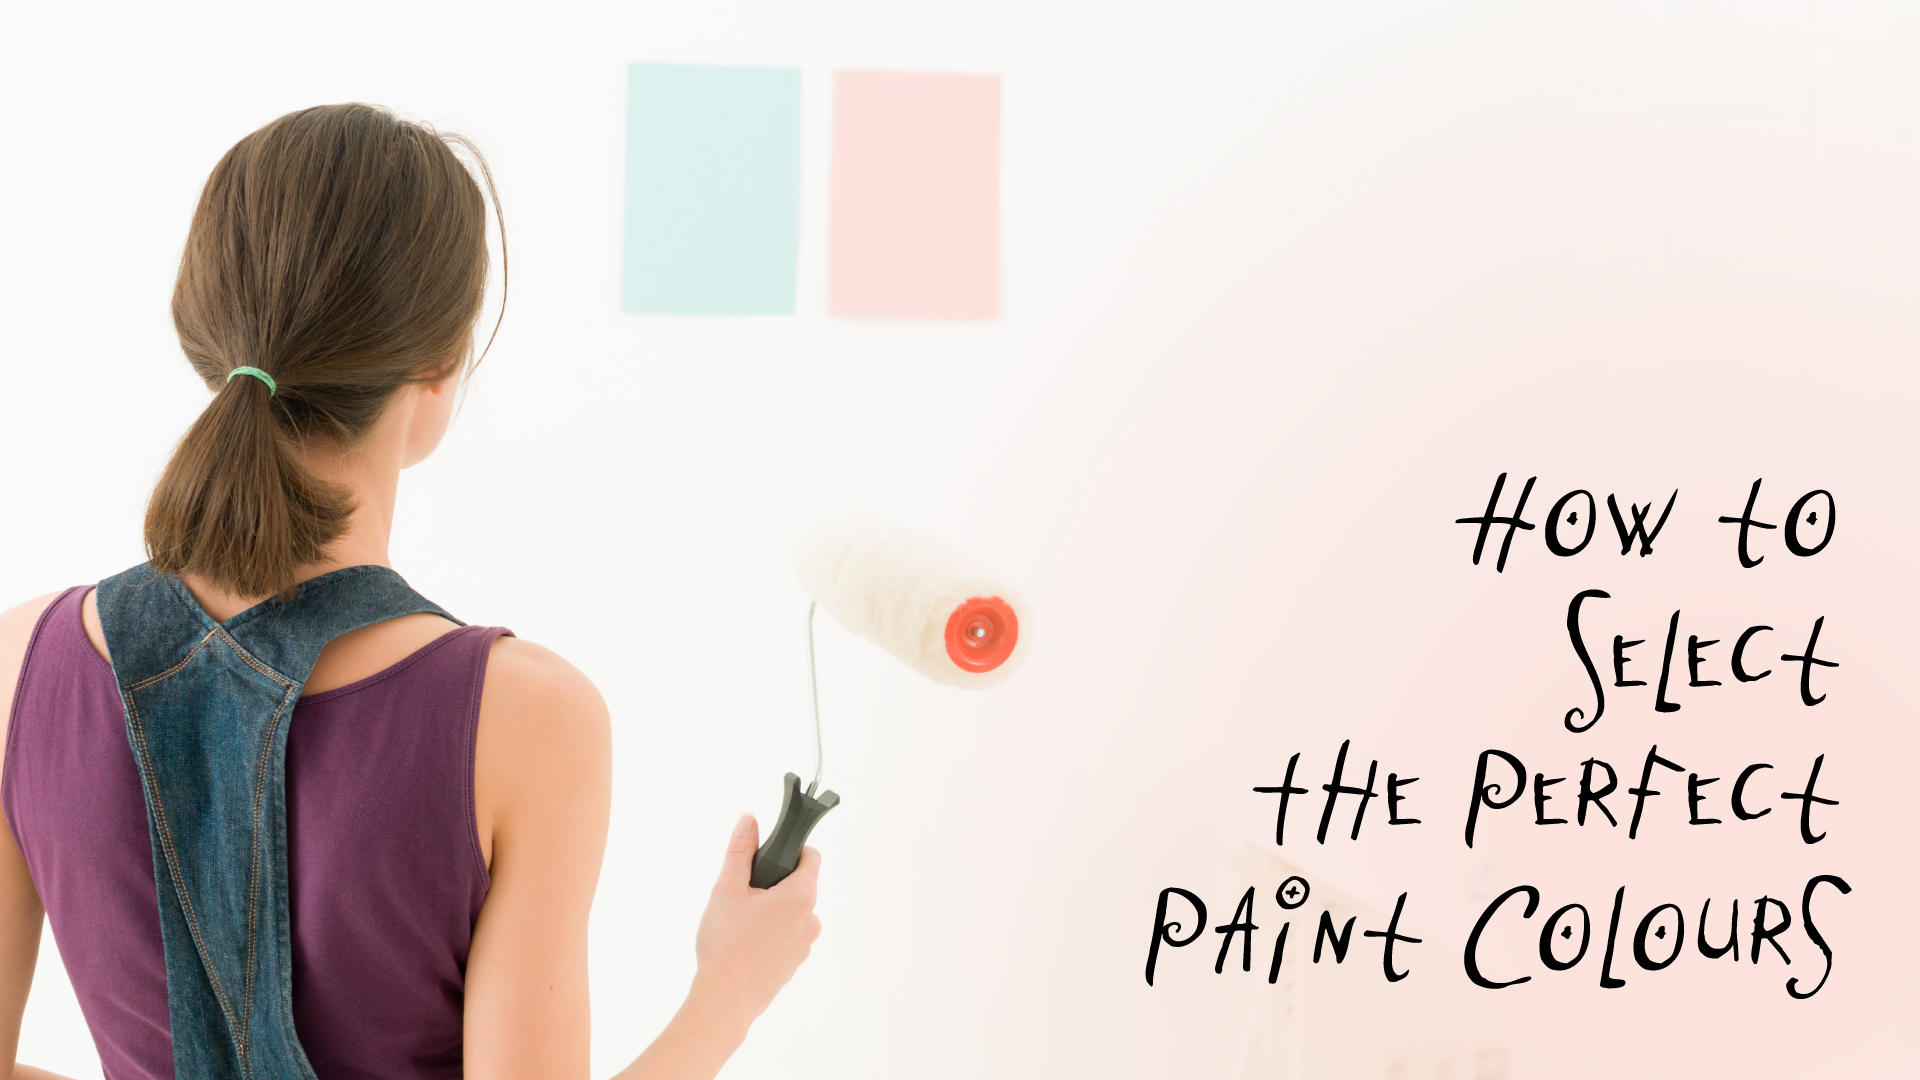 How to Pick The Perfect Paint Colour